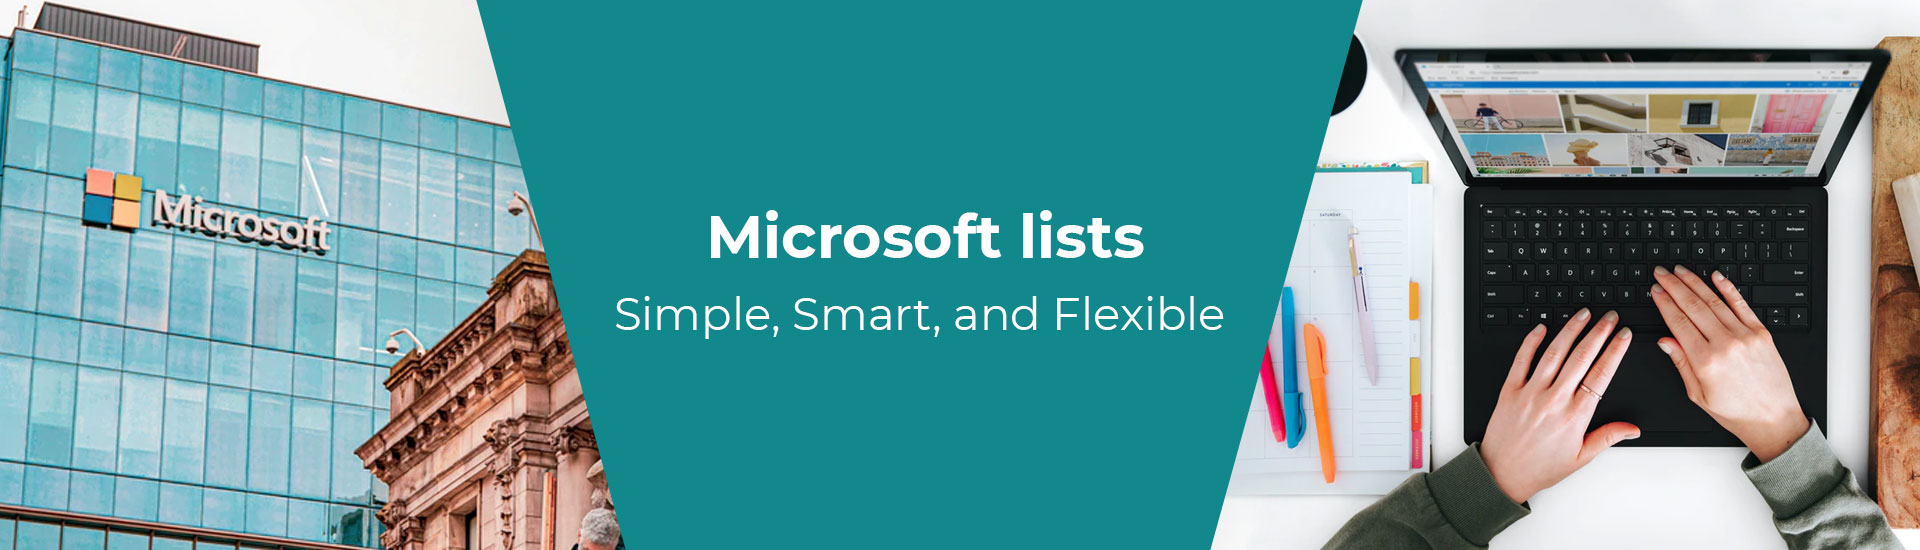 Microsoft lists – Simple, Smart, and Flexible